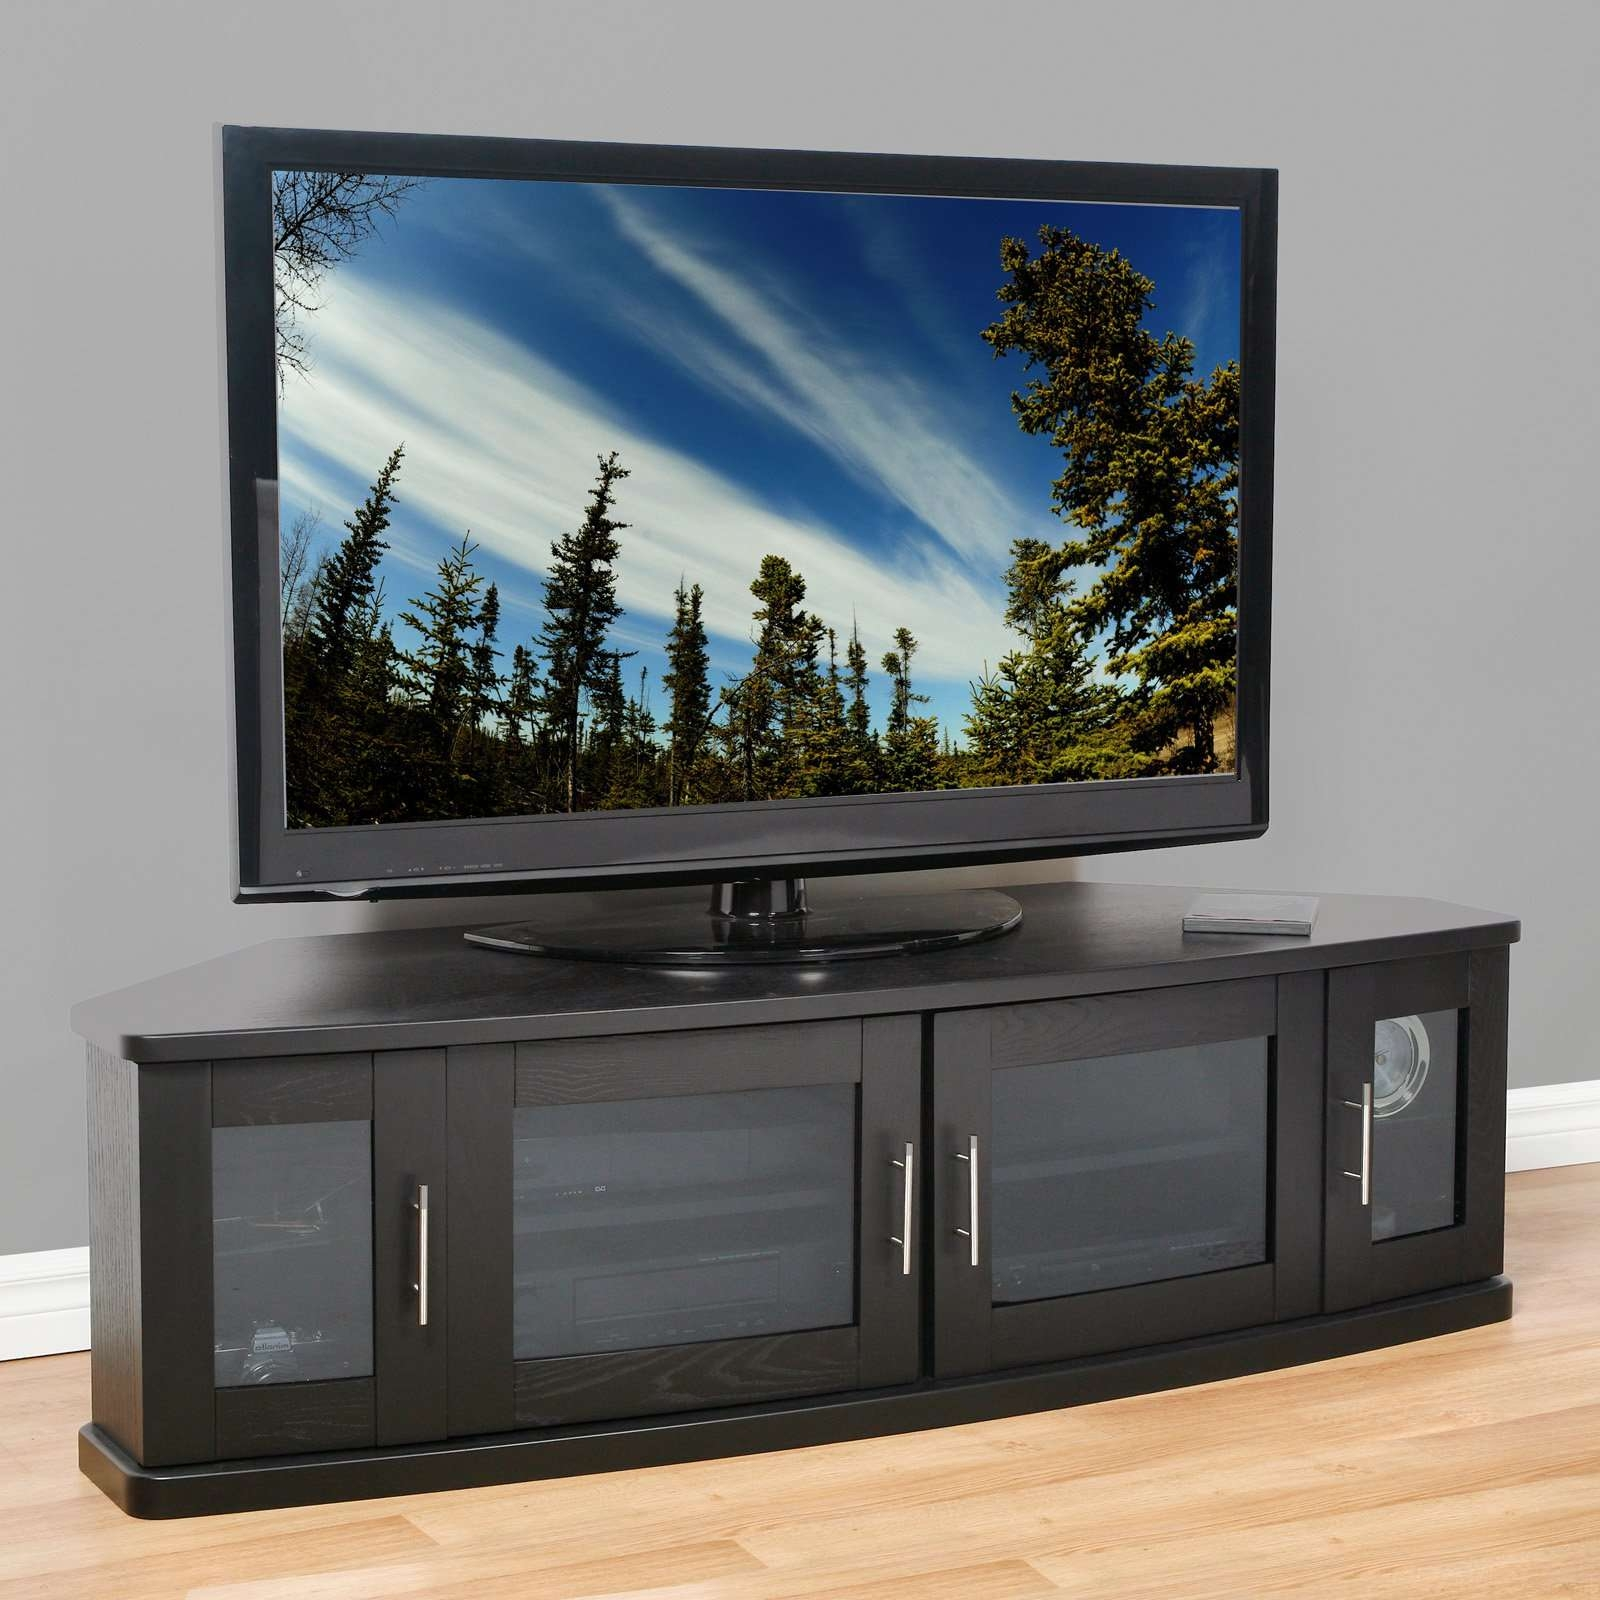 Plateau Newport 62 Inch Corner Tv Stand In Black – Walmart Pertaining To Tv Stands For Corner (View 11 of 15)